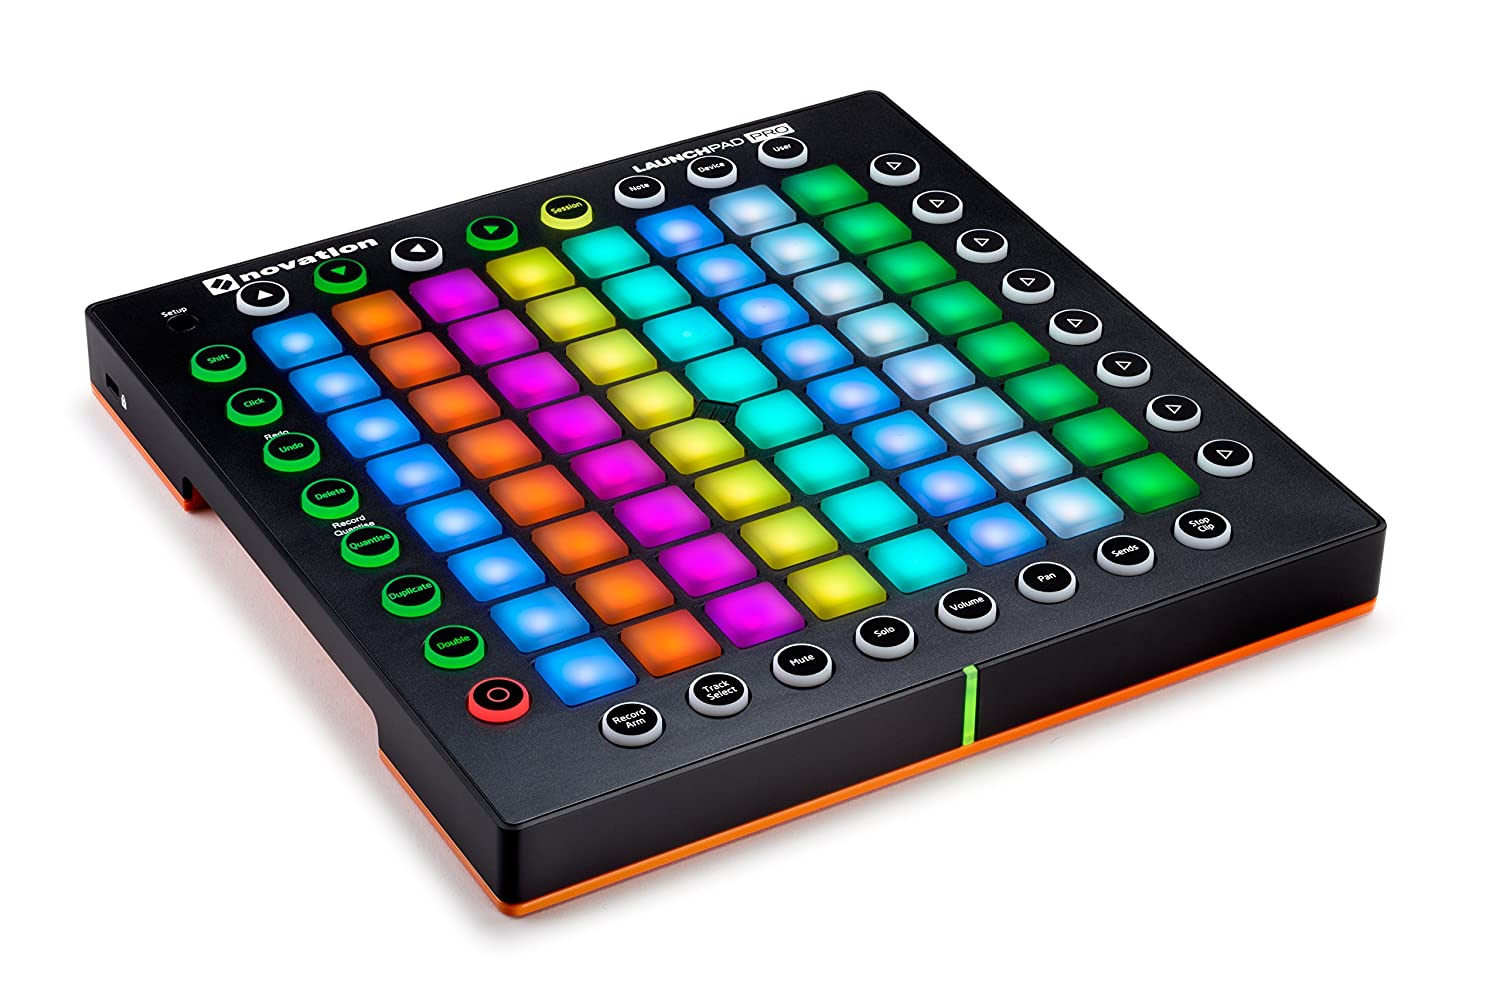 Novation MK2 Launchpad Mini Compact USB Grid Controller for Ableton Live AMS-LAUNCHPAD-MINI-MK2